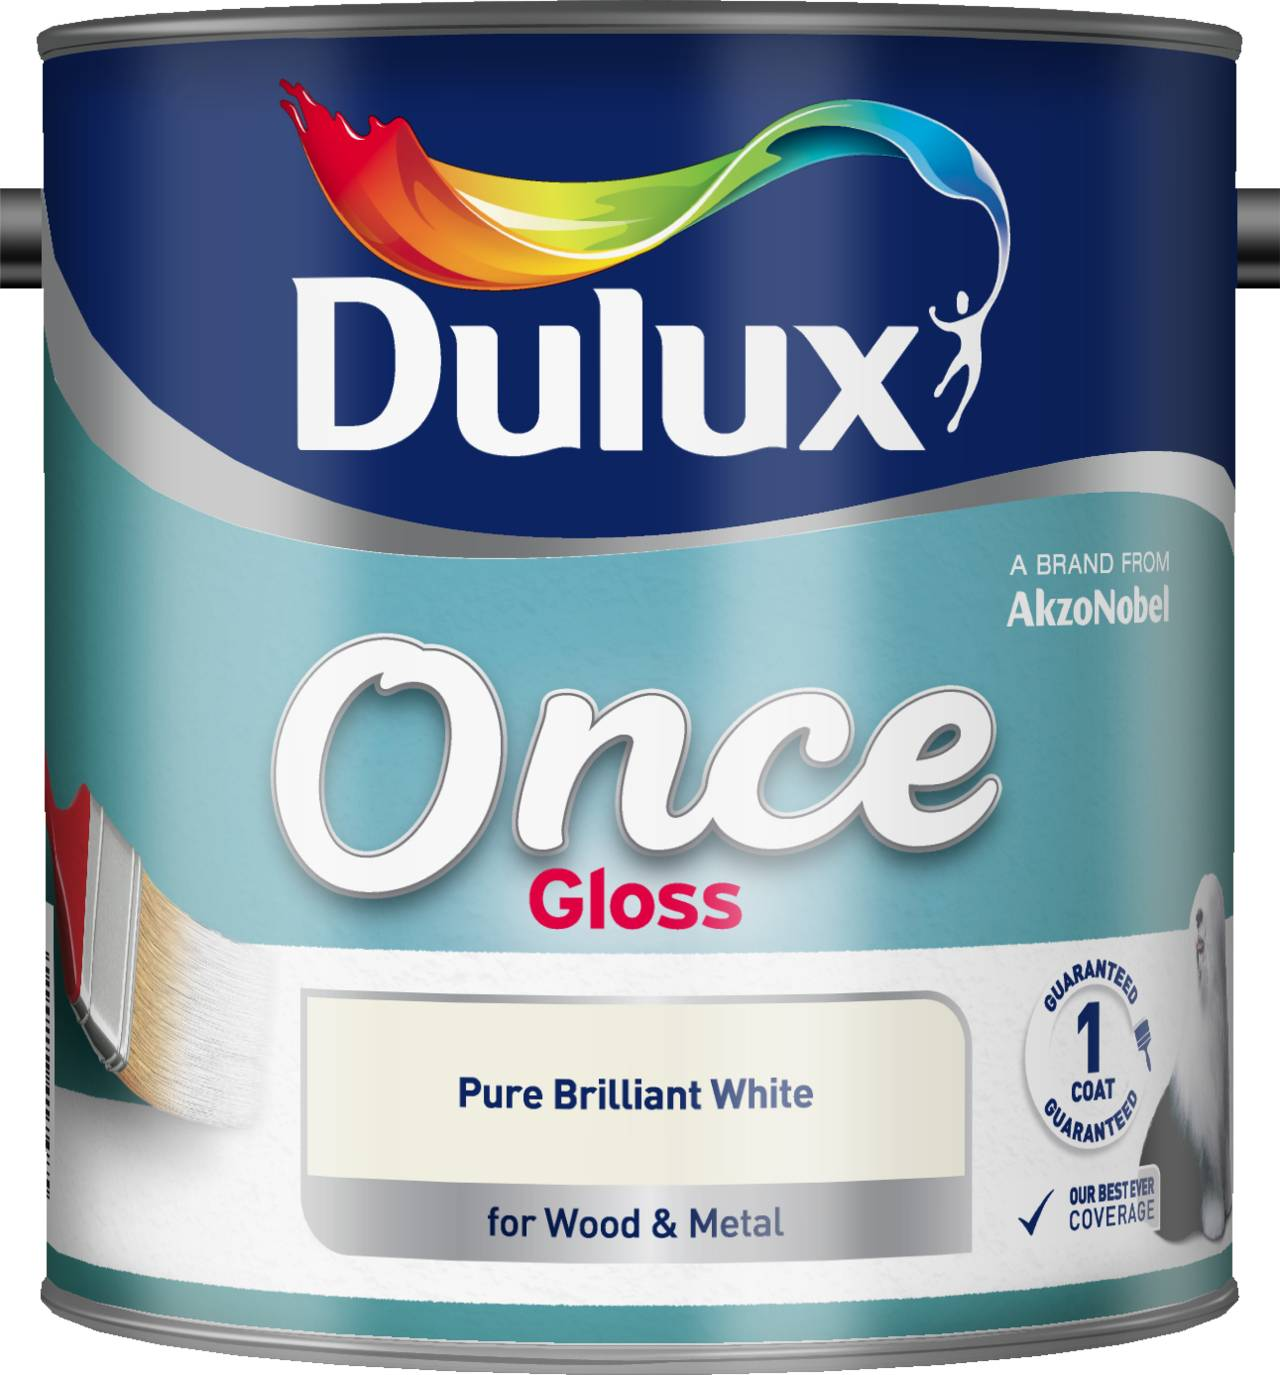 Compare prices for Dulux Once Gloss Paint - Brilliant White - 2.5L